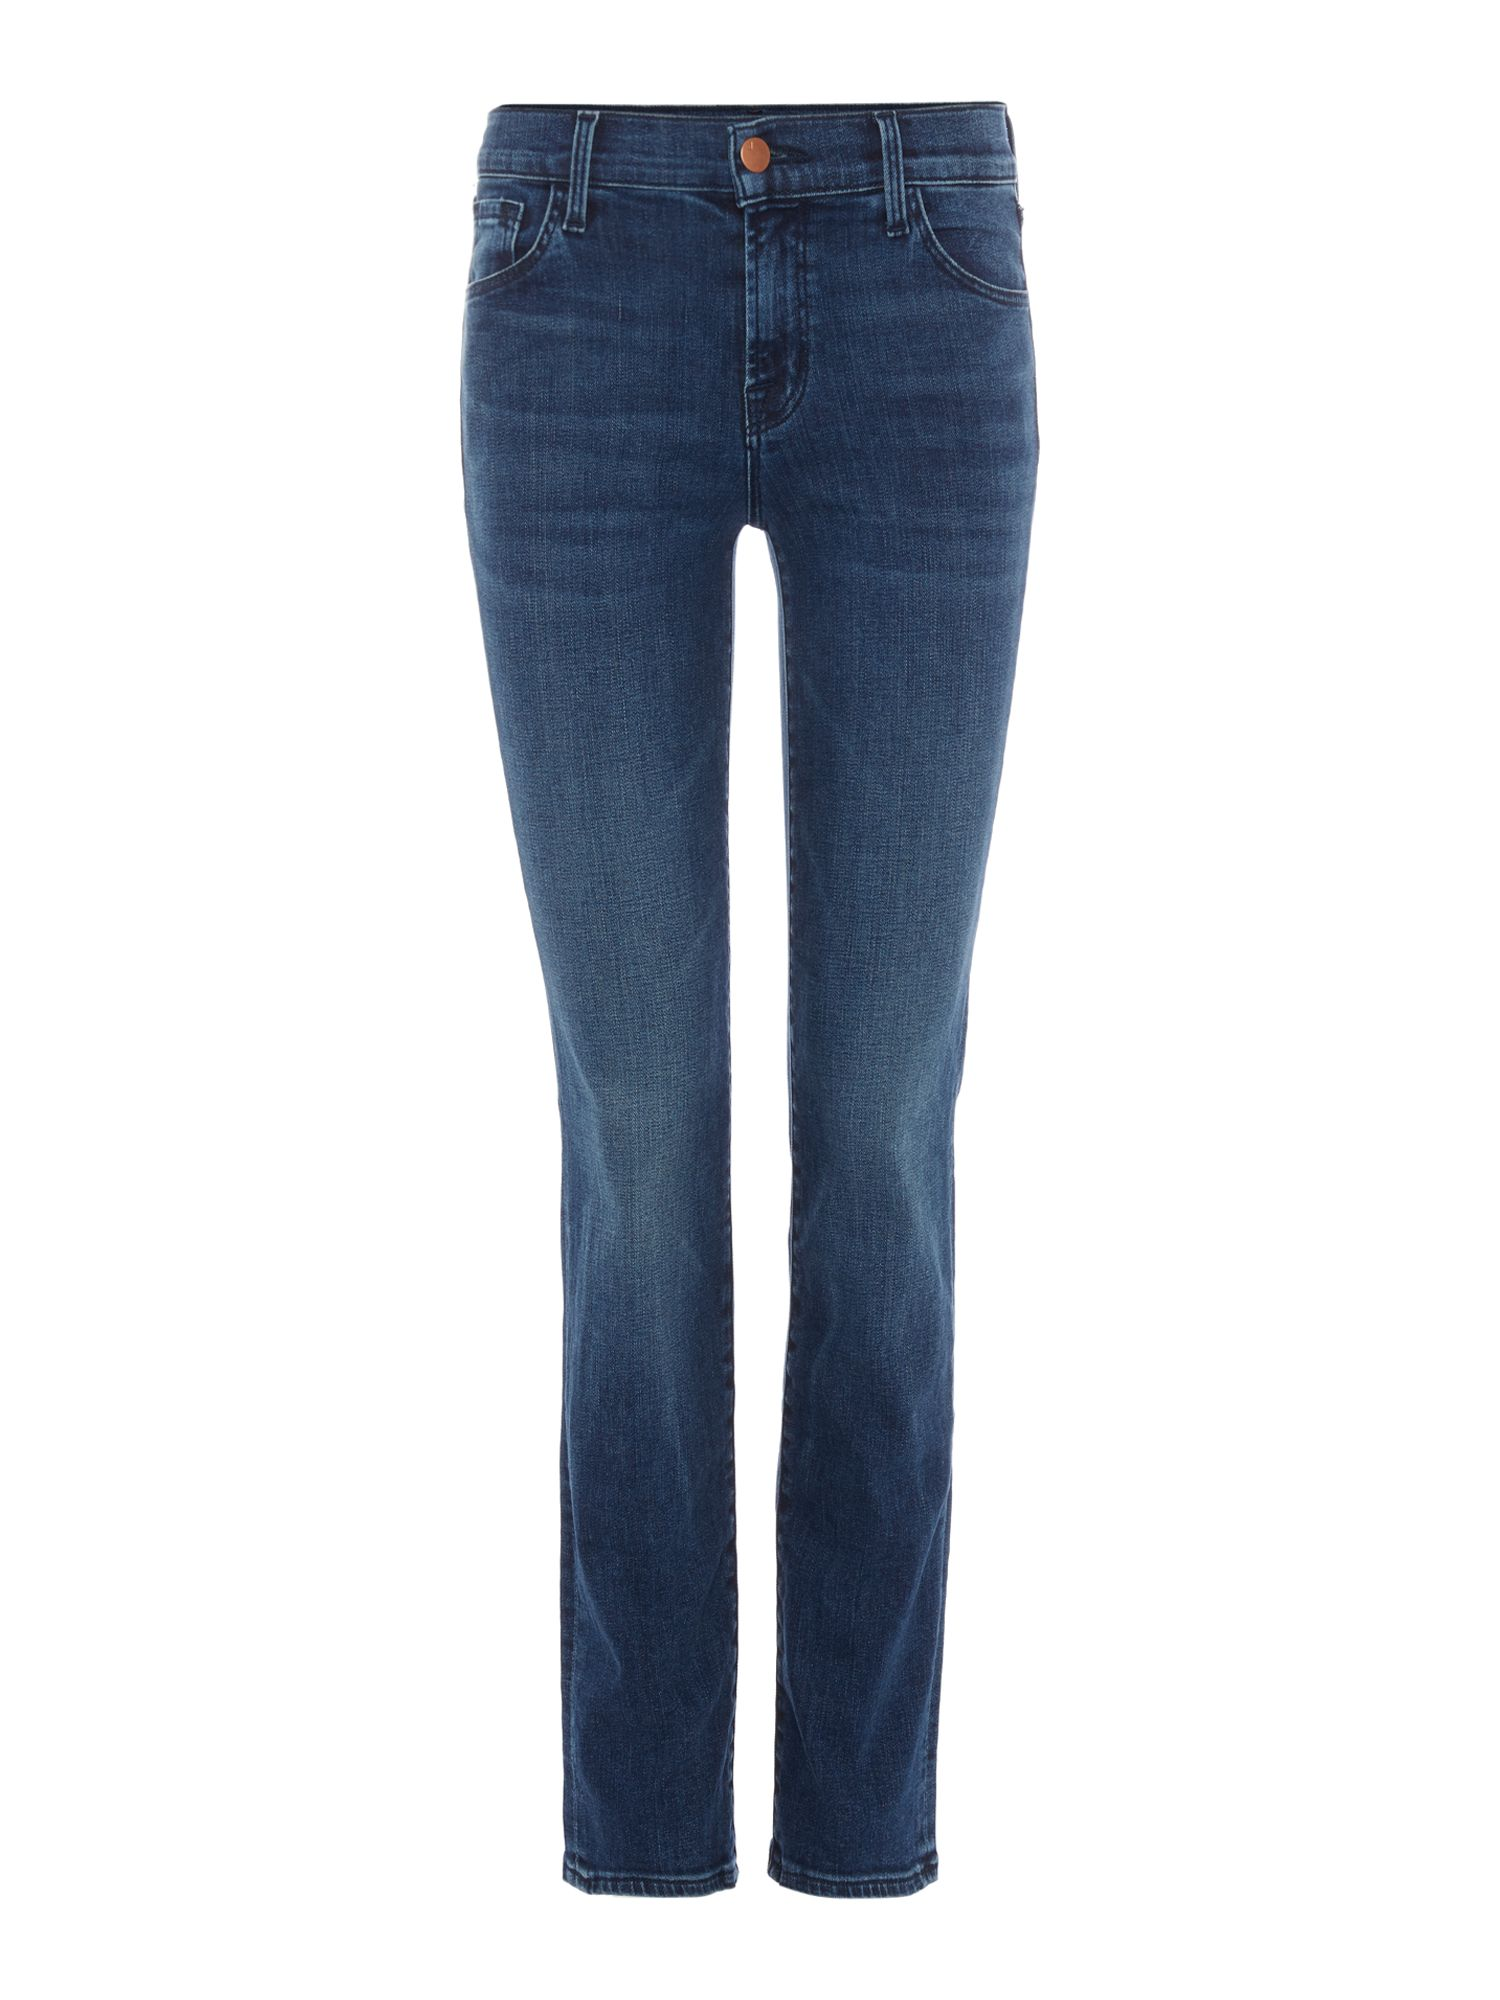 Maude Mid Rise Cigarette Jeans In Swift, Denim Mid Wash